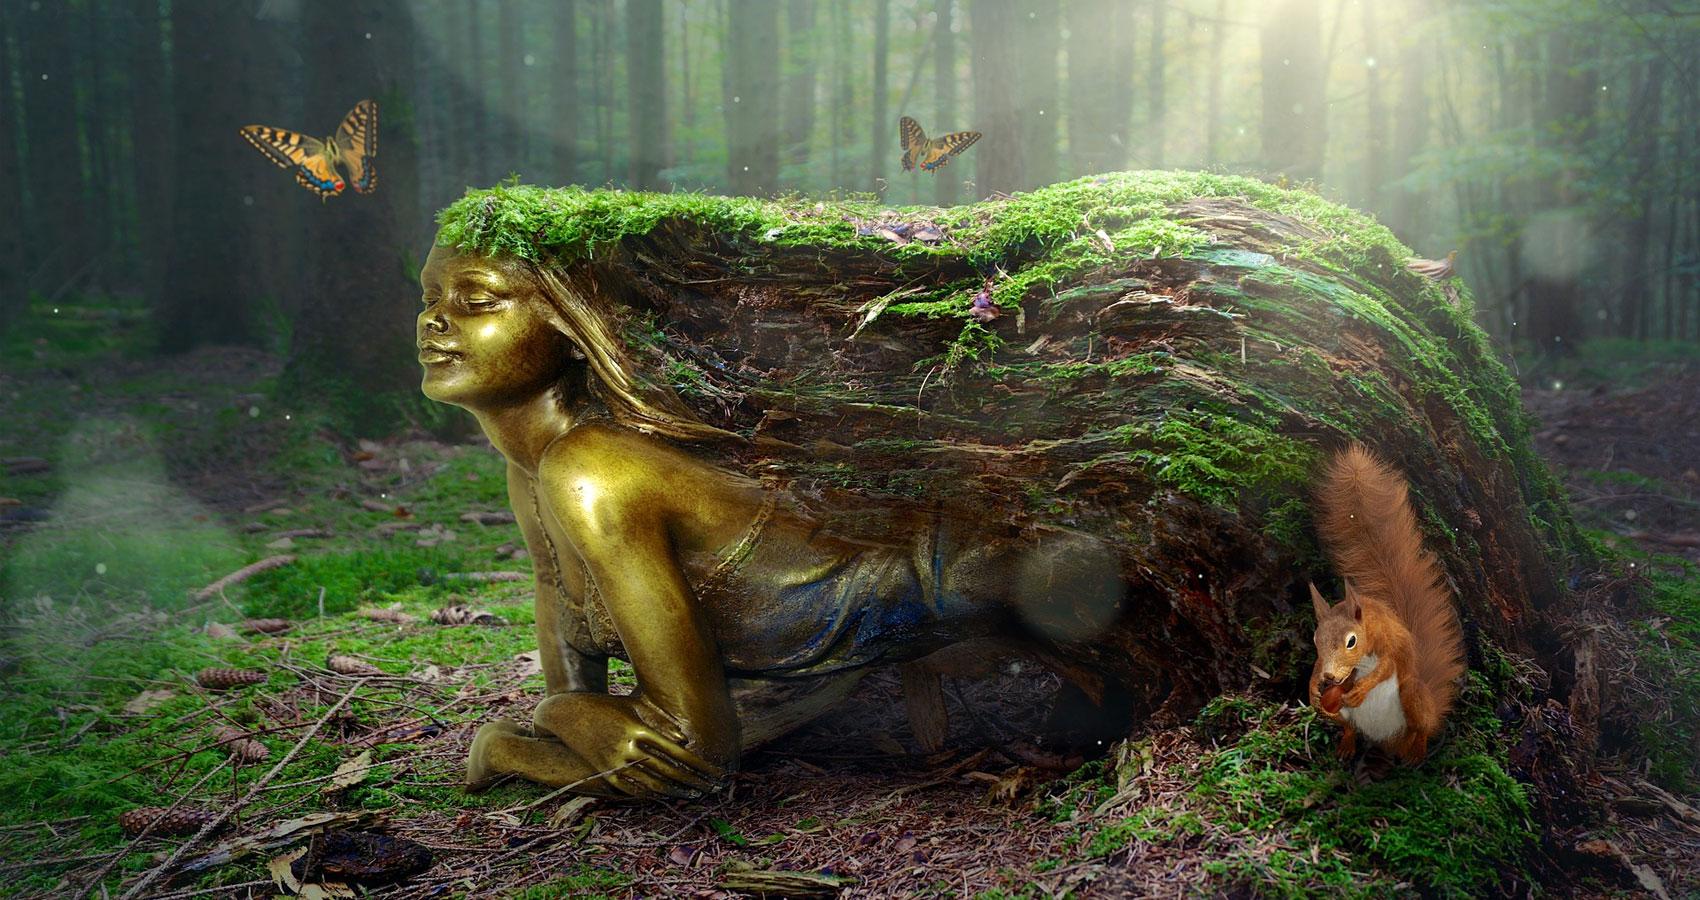 Go Deep Into Nature ... micropoetry by Jan Smith at Spillwords.com